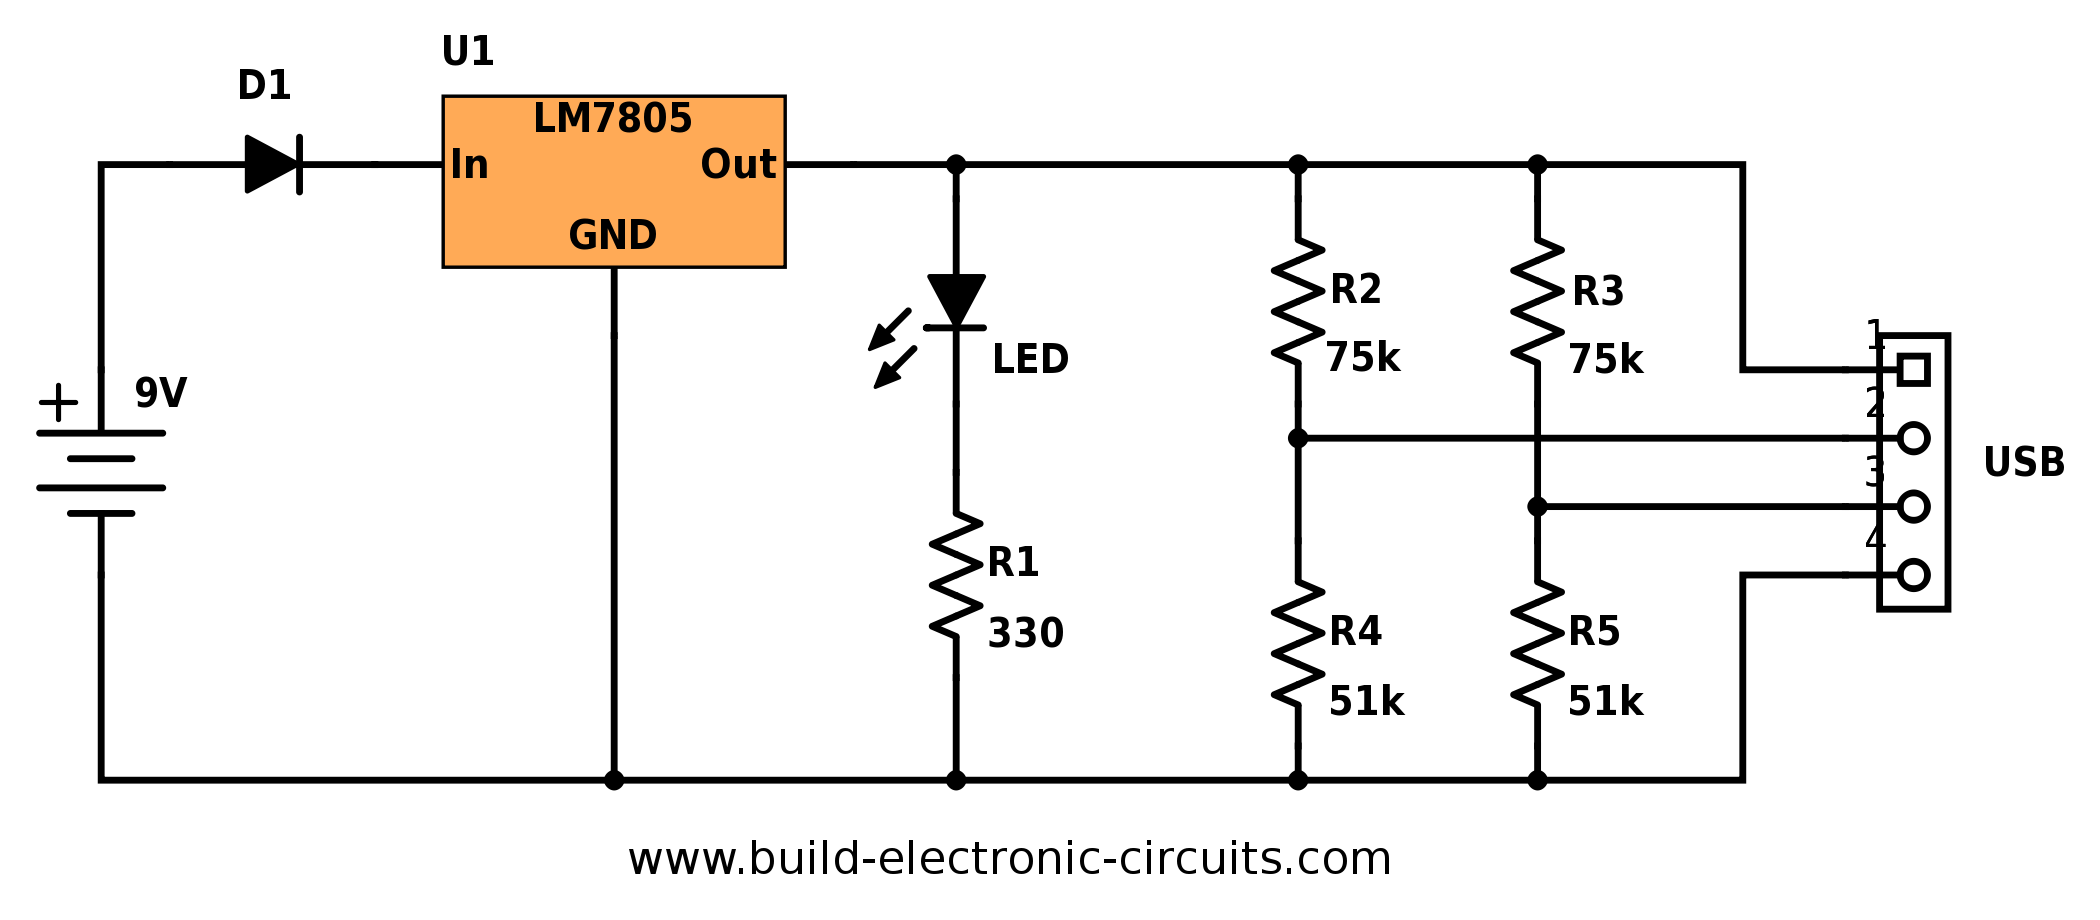 hight resolution of unique circuits diagram diagram wiringdiagram diagramming diagramm visuals visualisation graphical